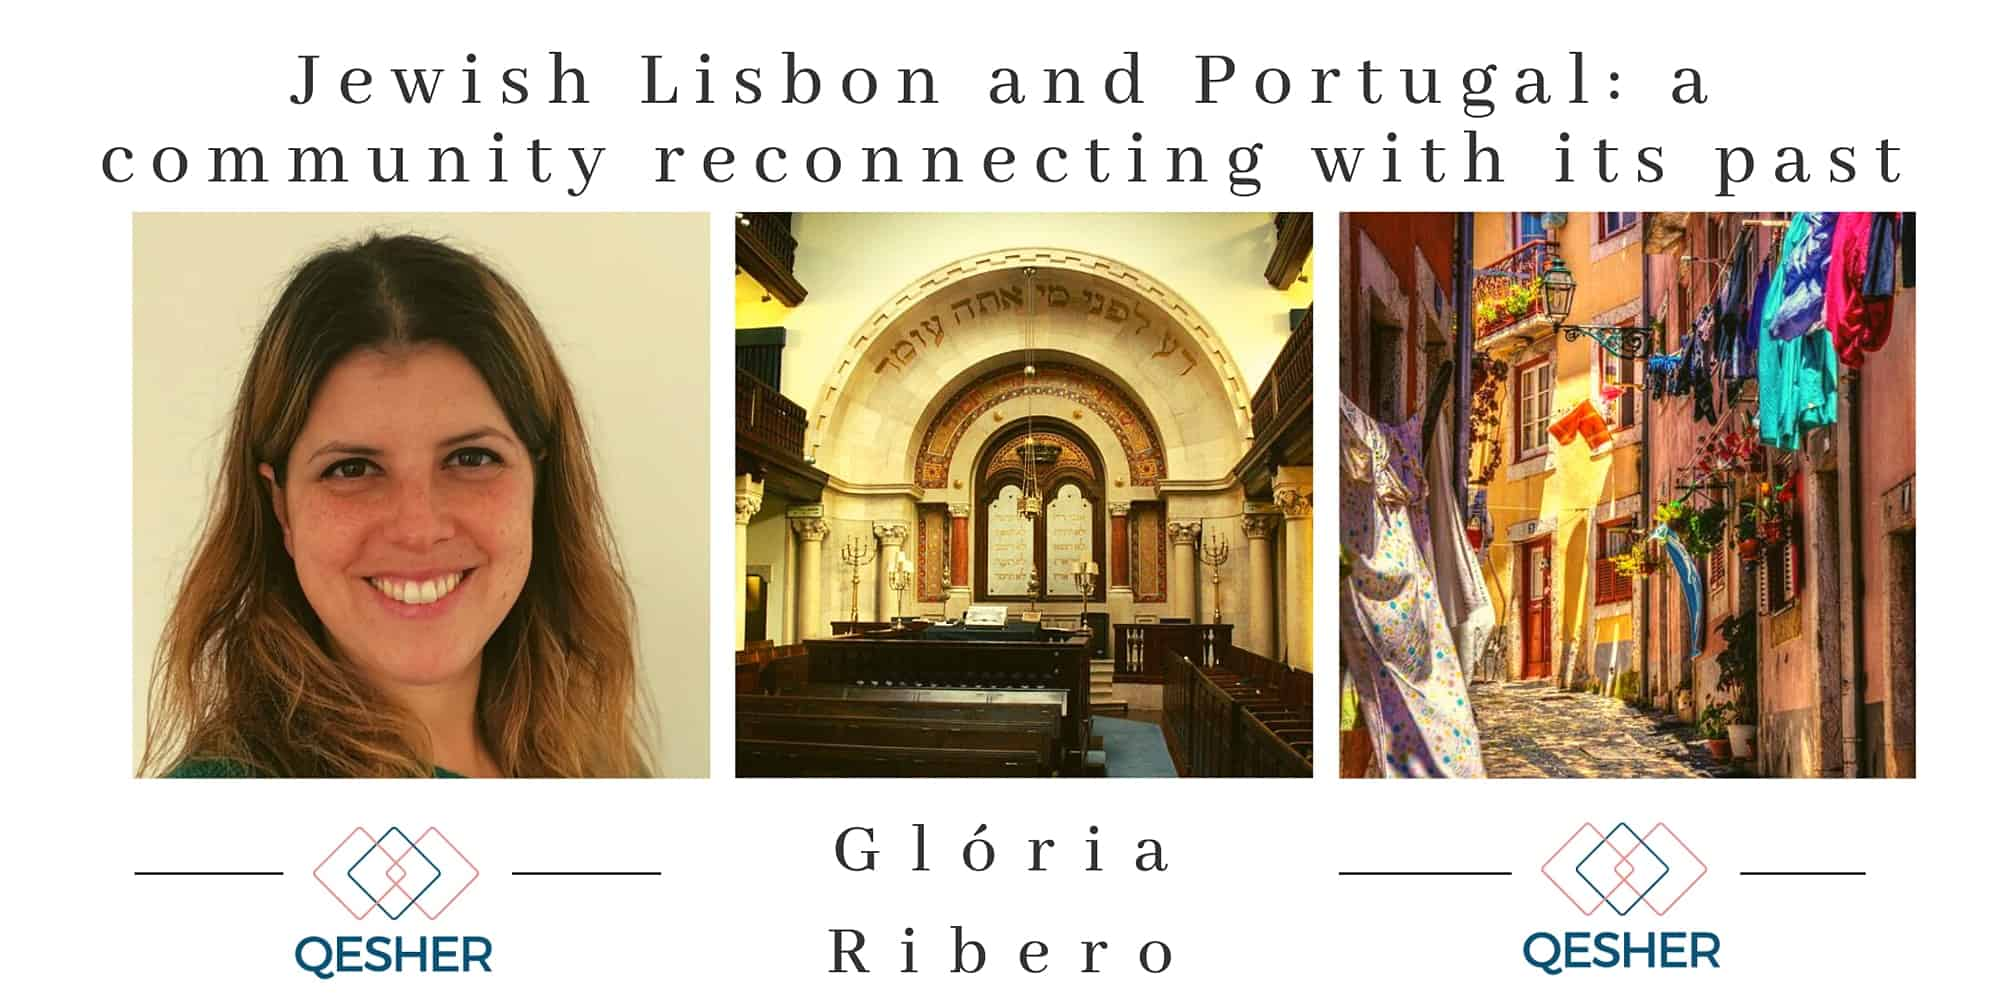 Jewish Lisbon and Portugal: a community reconnecting with its past